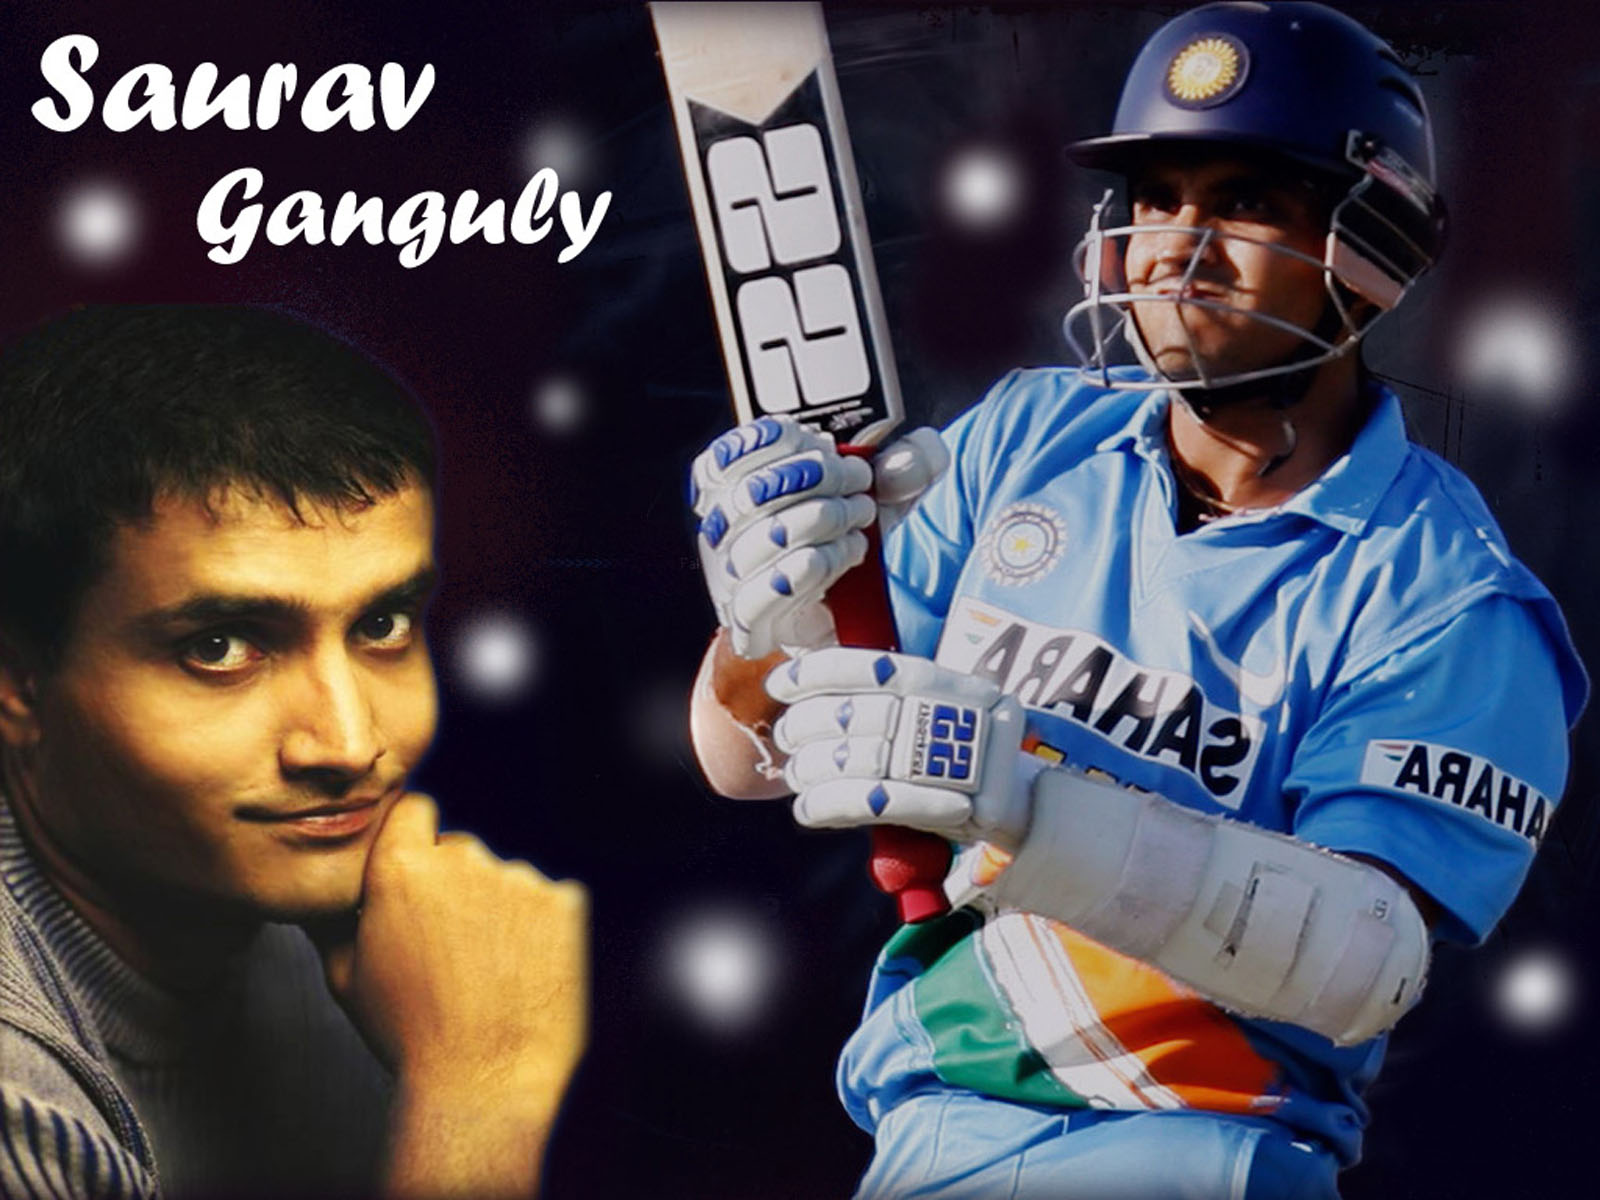 sourav ganguly Sourav chandidas ganguly ( pronunciation (hel p inf o) born 8 july 1972), affectionately known as dada (meaning elder brother in bengali), is a former indian cricketer and captain of the indian national team, currently, he is appointed as the president of the cricket association of bengal and president of the editorial board with wisden india.